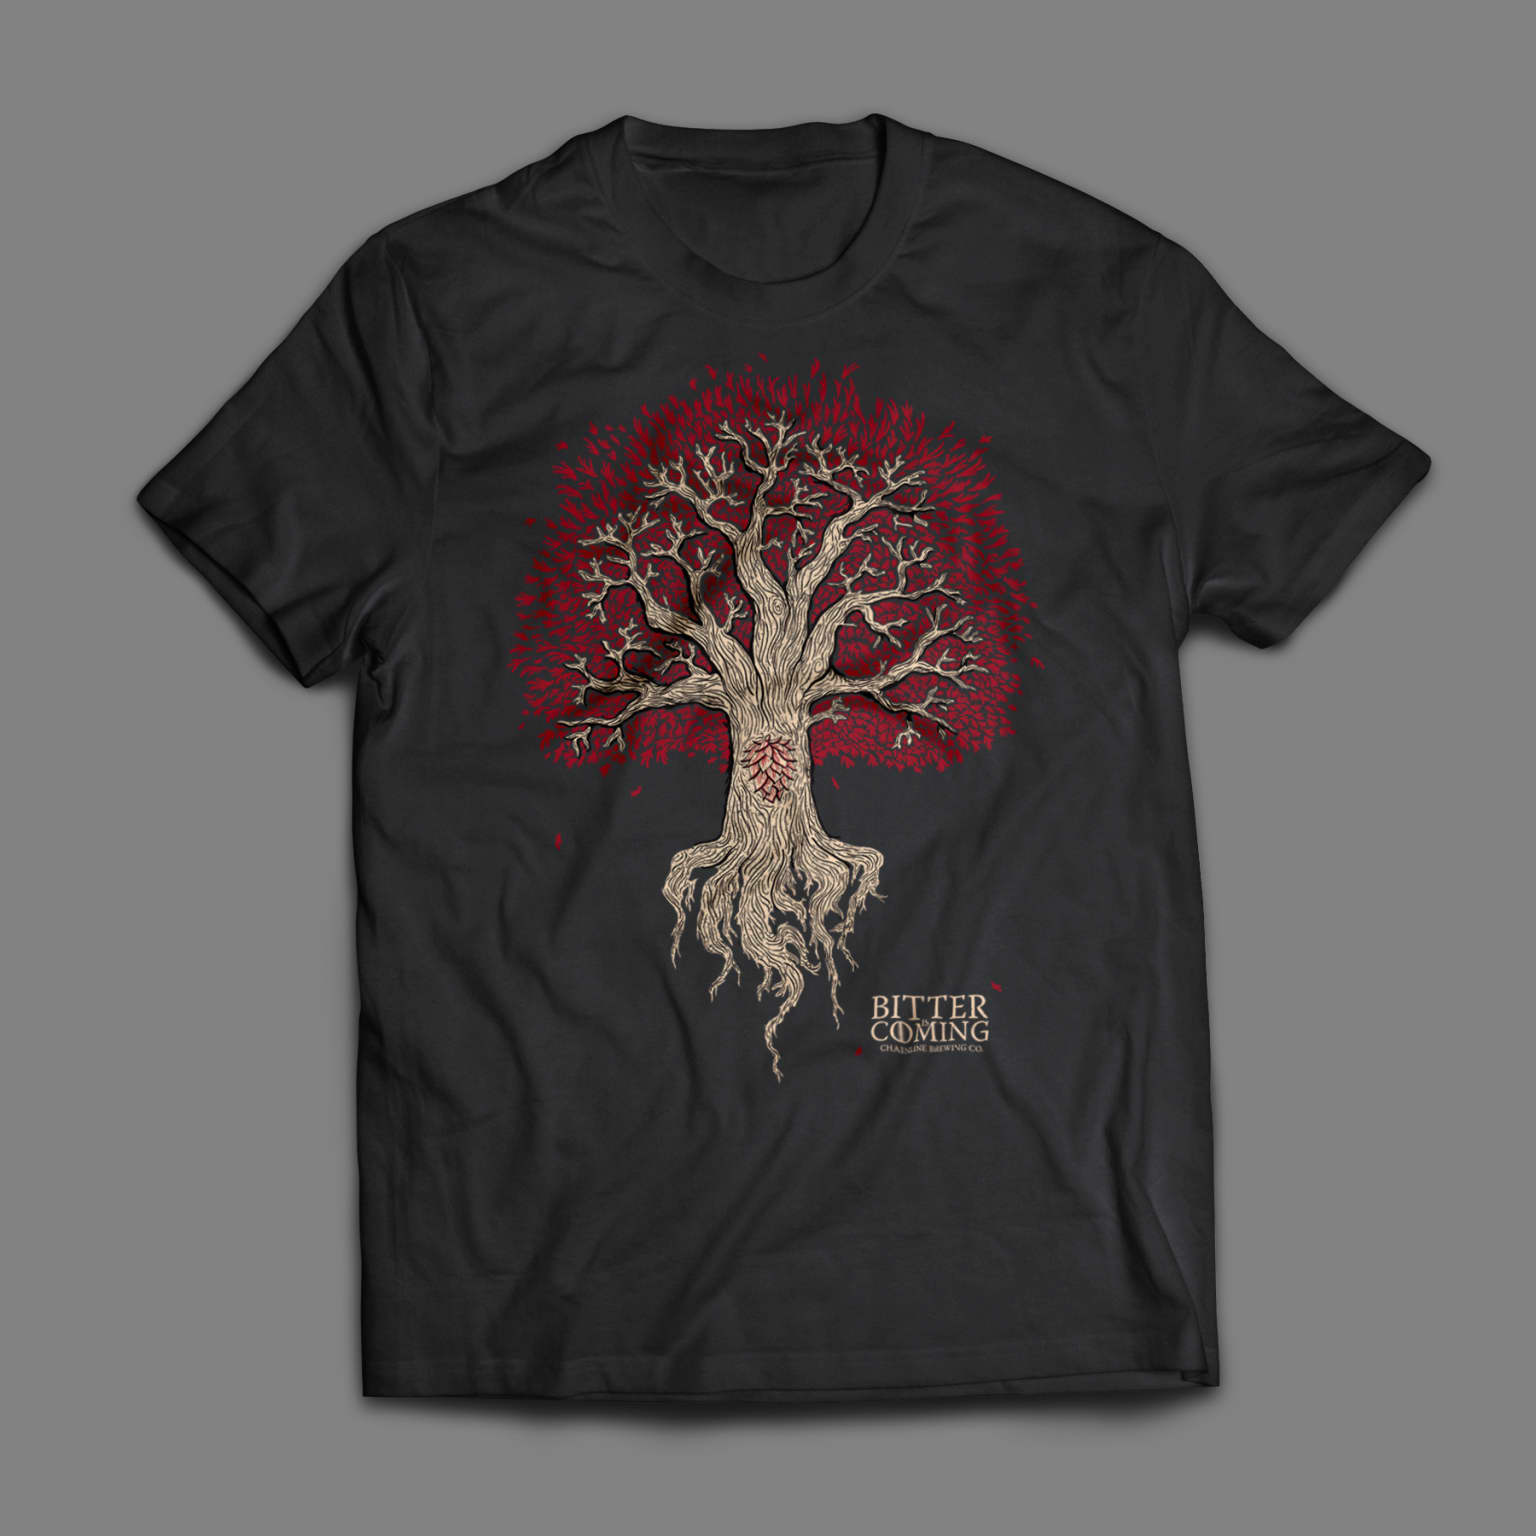 Bitter is Coming 2017 T Shirt